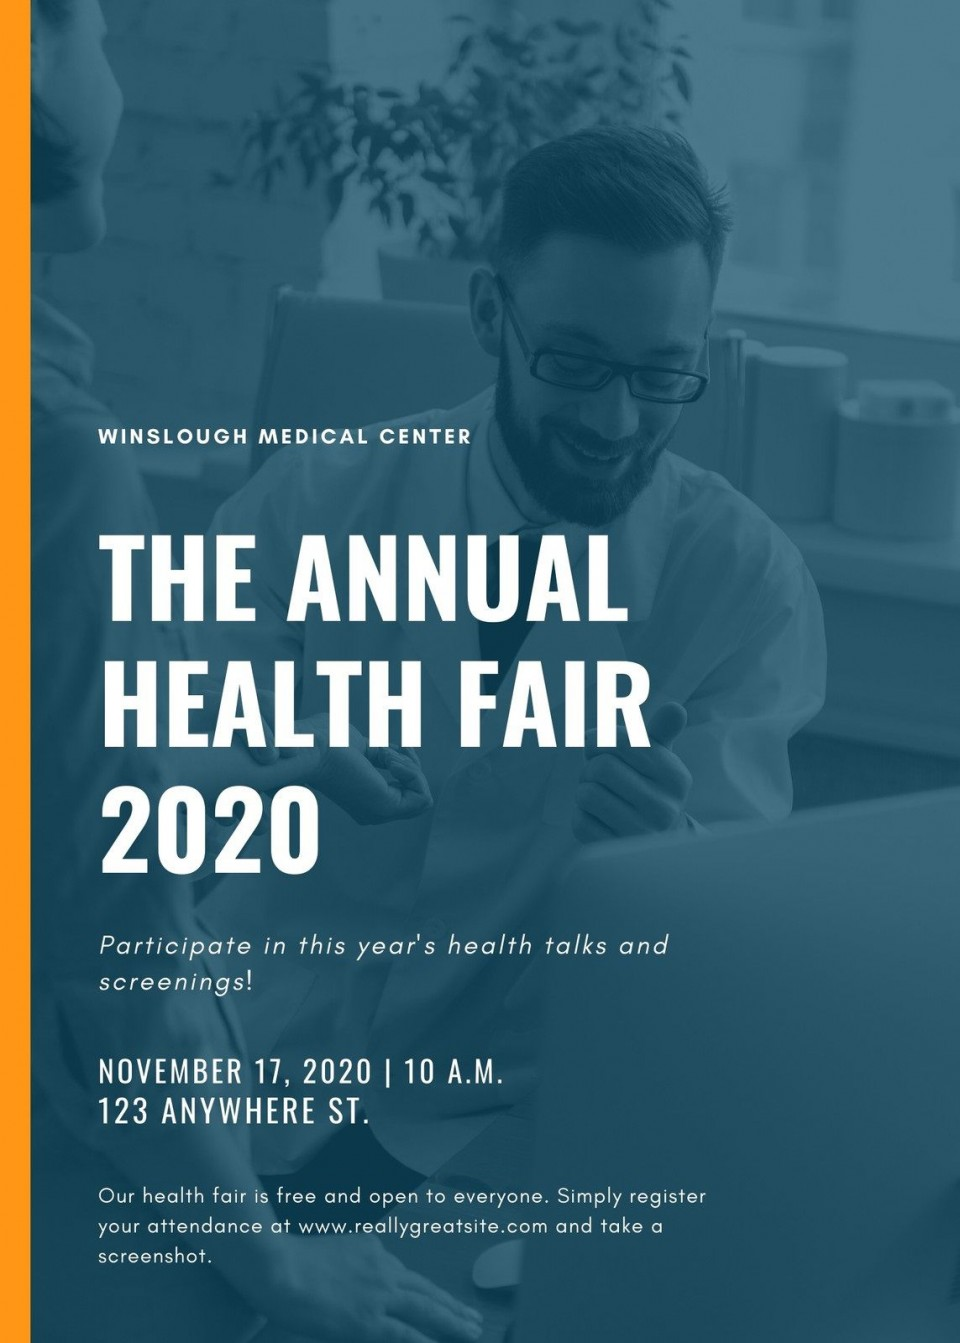 007 Phenomenal Health Fair Flyer Template High Definition  And Wellnes Word960